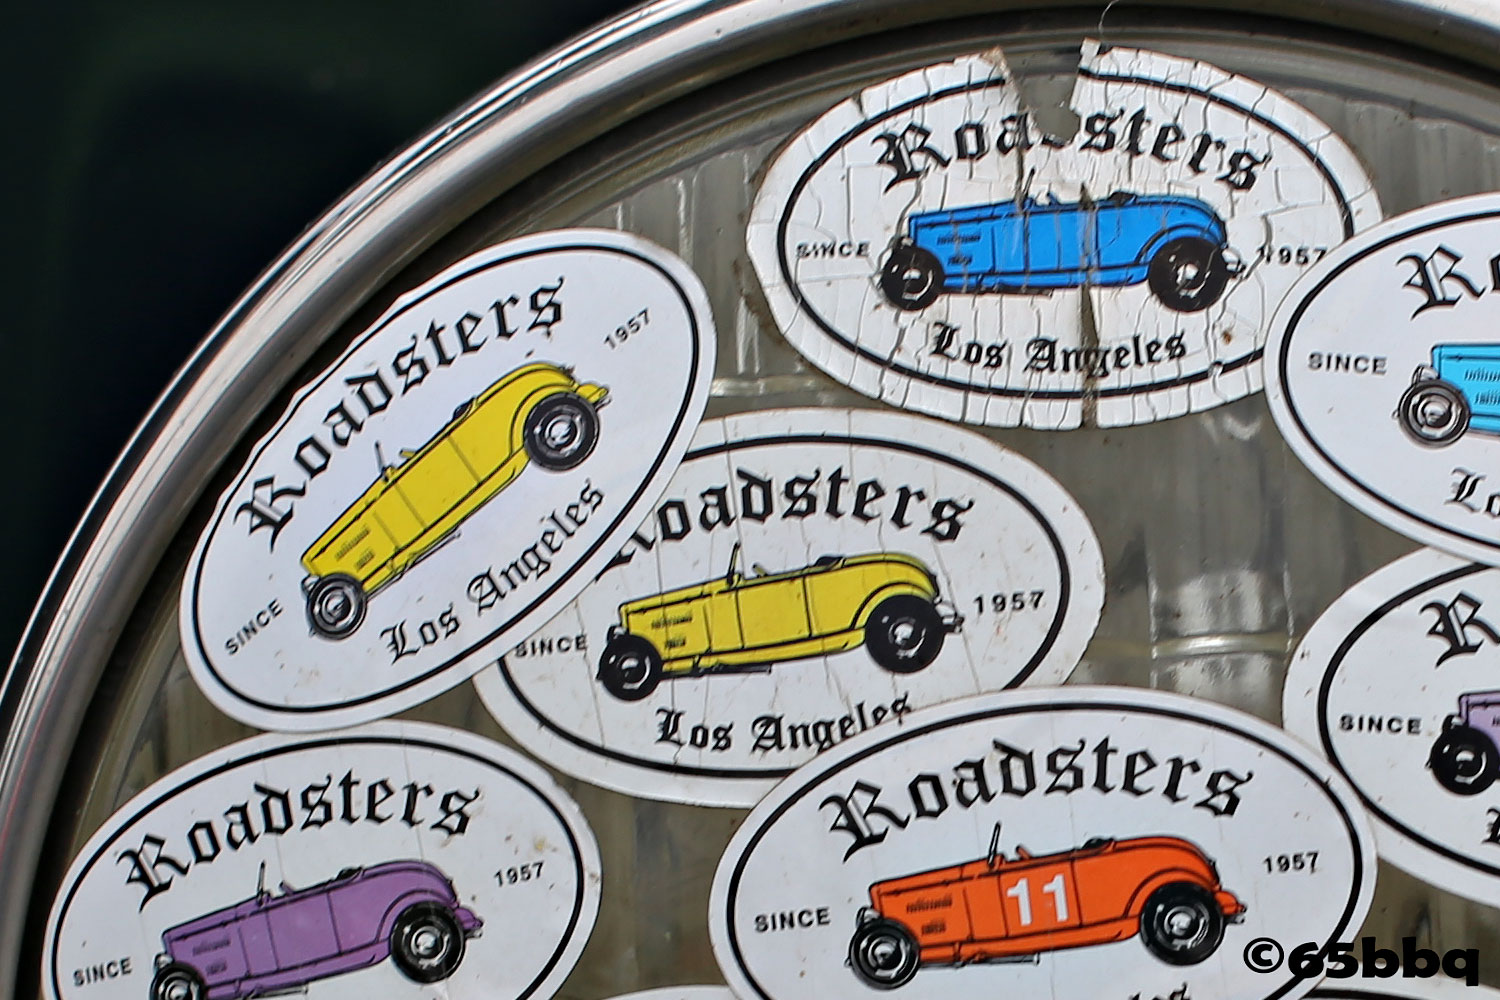 The Roadsters 65bbq